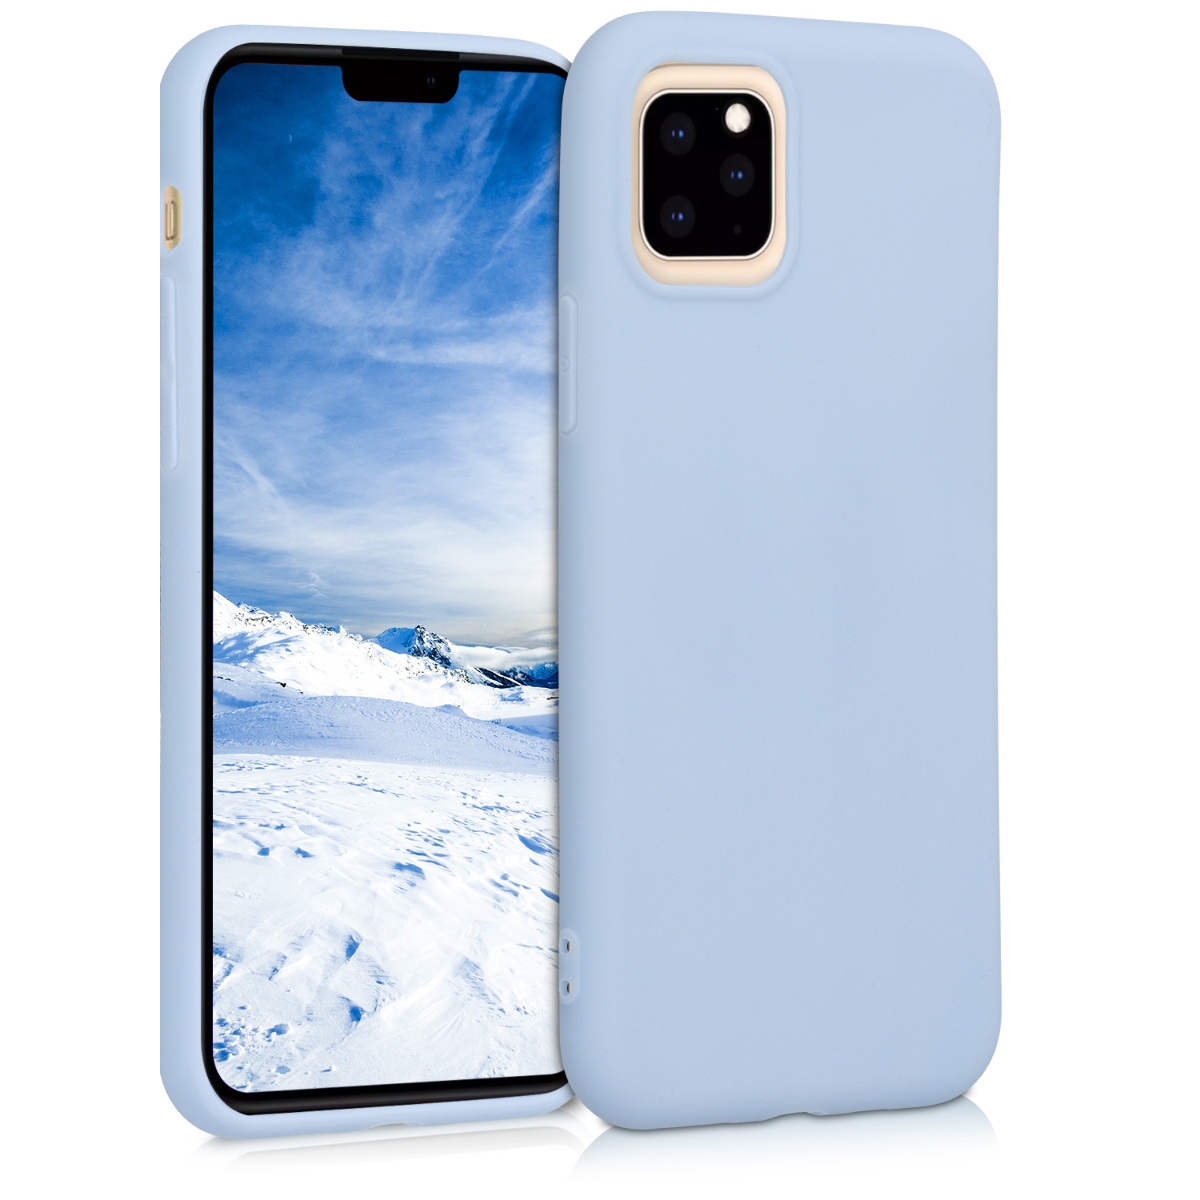 KW Θήκη Σιλικόνης Apple iPhone 11 Pro - Soft Flexible Shock Absorbent - Light Blue Matte (49788.58)